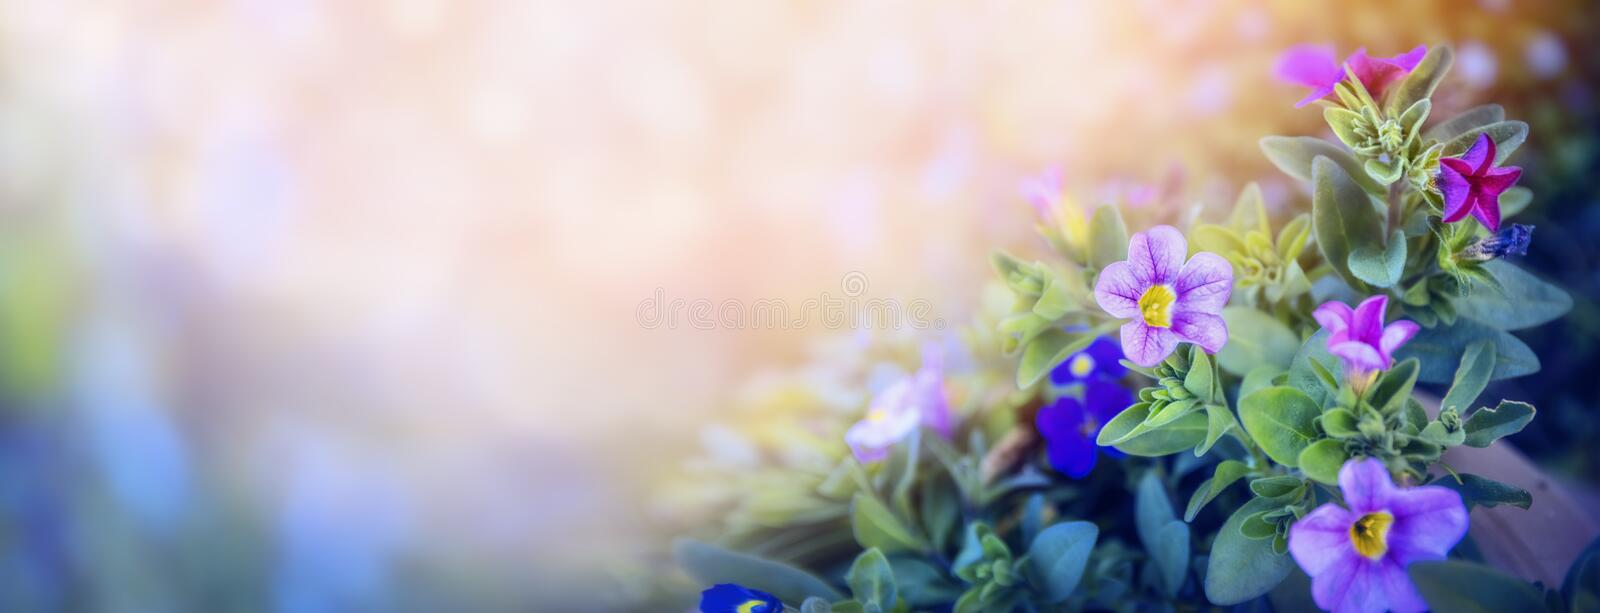 Download Purple Petunia Flowers Bed On Beautiful Blurred Nature Background, Banner For Website With Garden Concept Stock Image - Image of botany, enchanted: 54798543